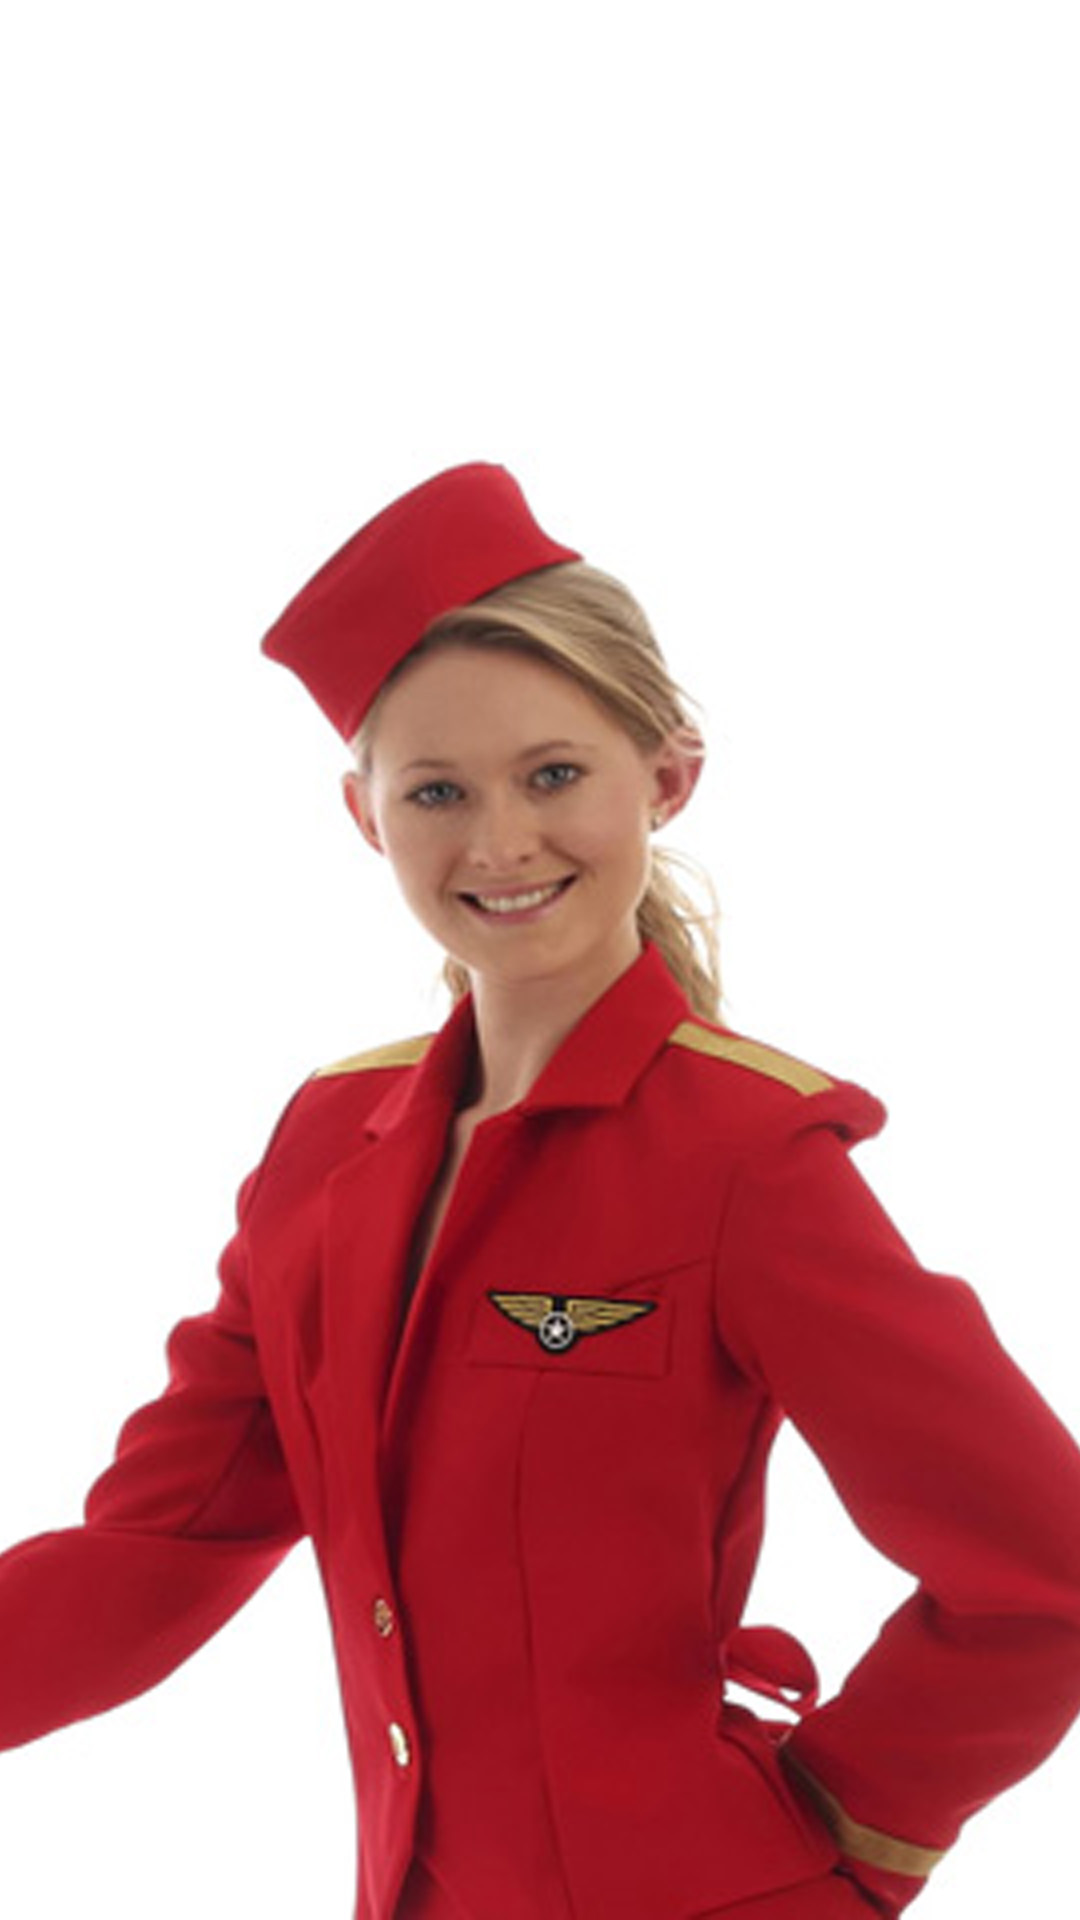 Shanghai Airlines flight attendants Aviation Galaxy S5 Wallpapers 1080x1920